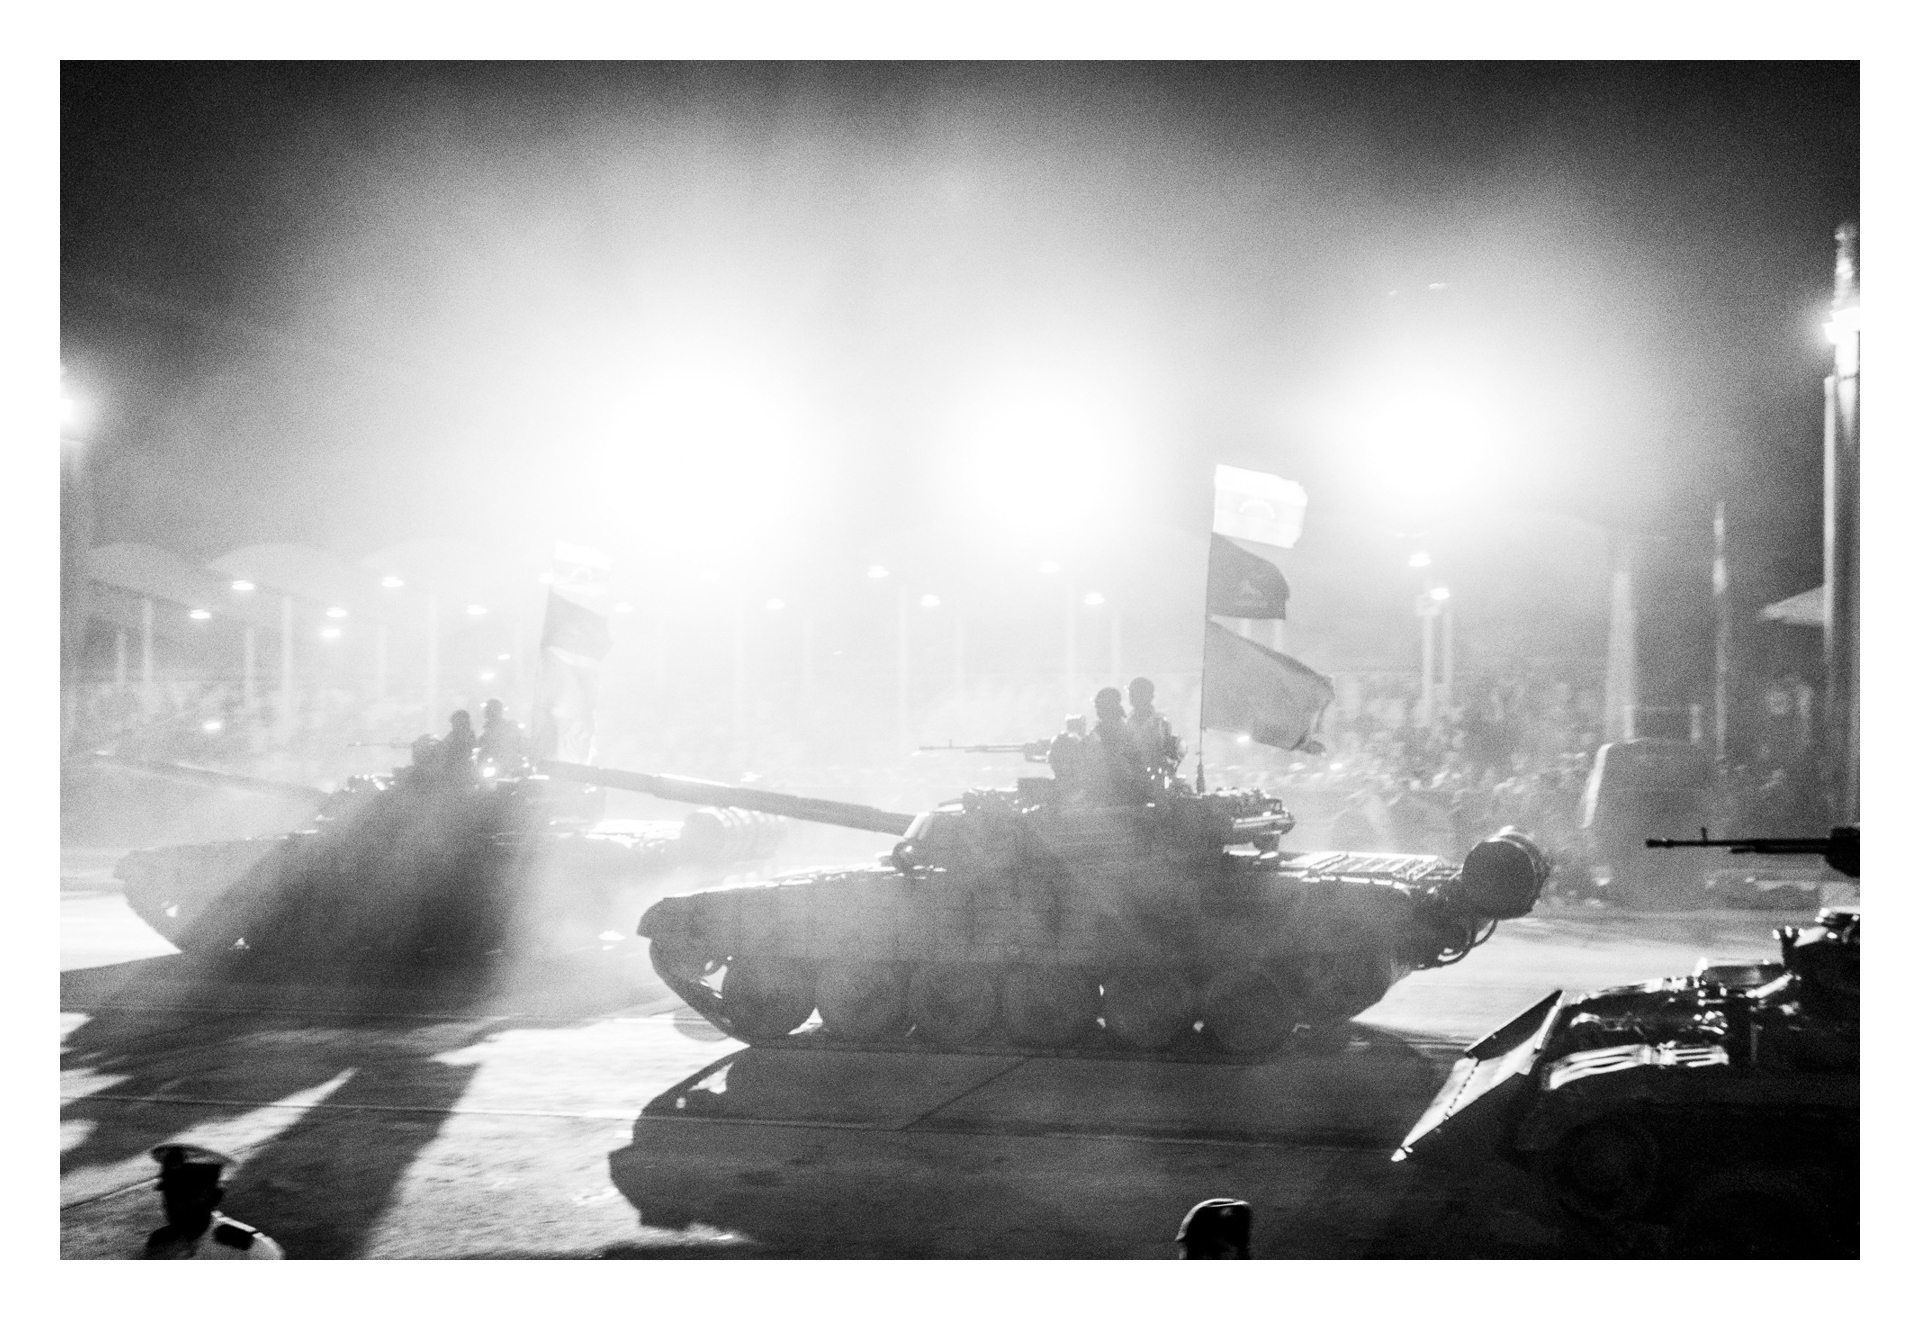 CARACAS, VENEZUELA - APRIL 2013: Tanks during the Venezuelan Independence Day celebrations at the Paseo de los Pr�es de la Patria. The same day Nicolas Maduro was named the president of the country.